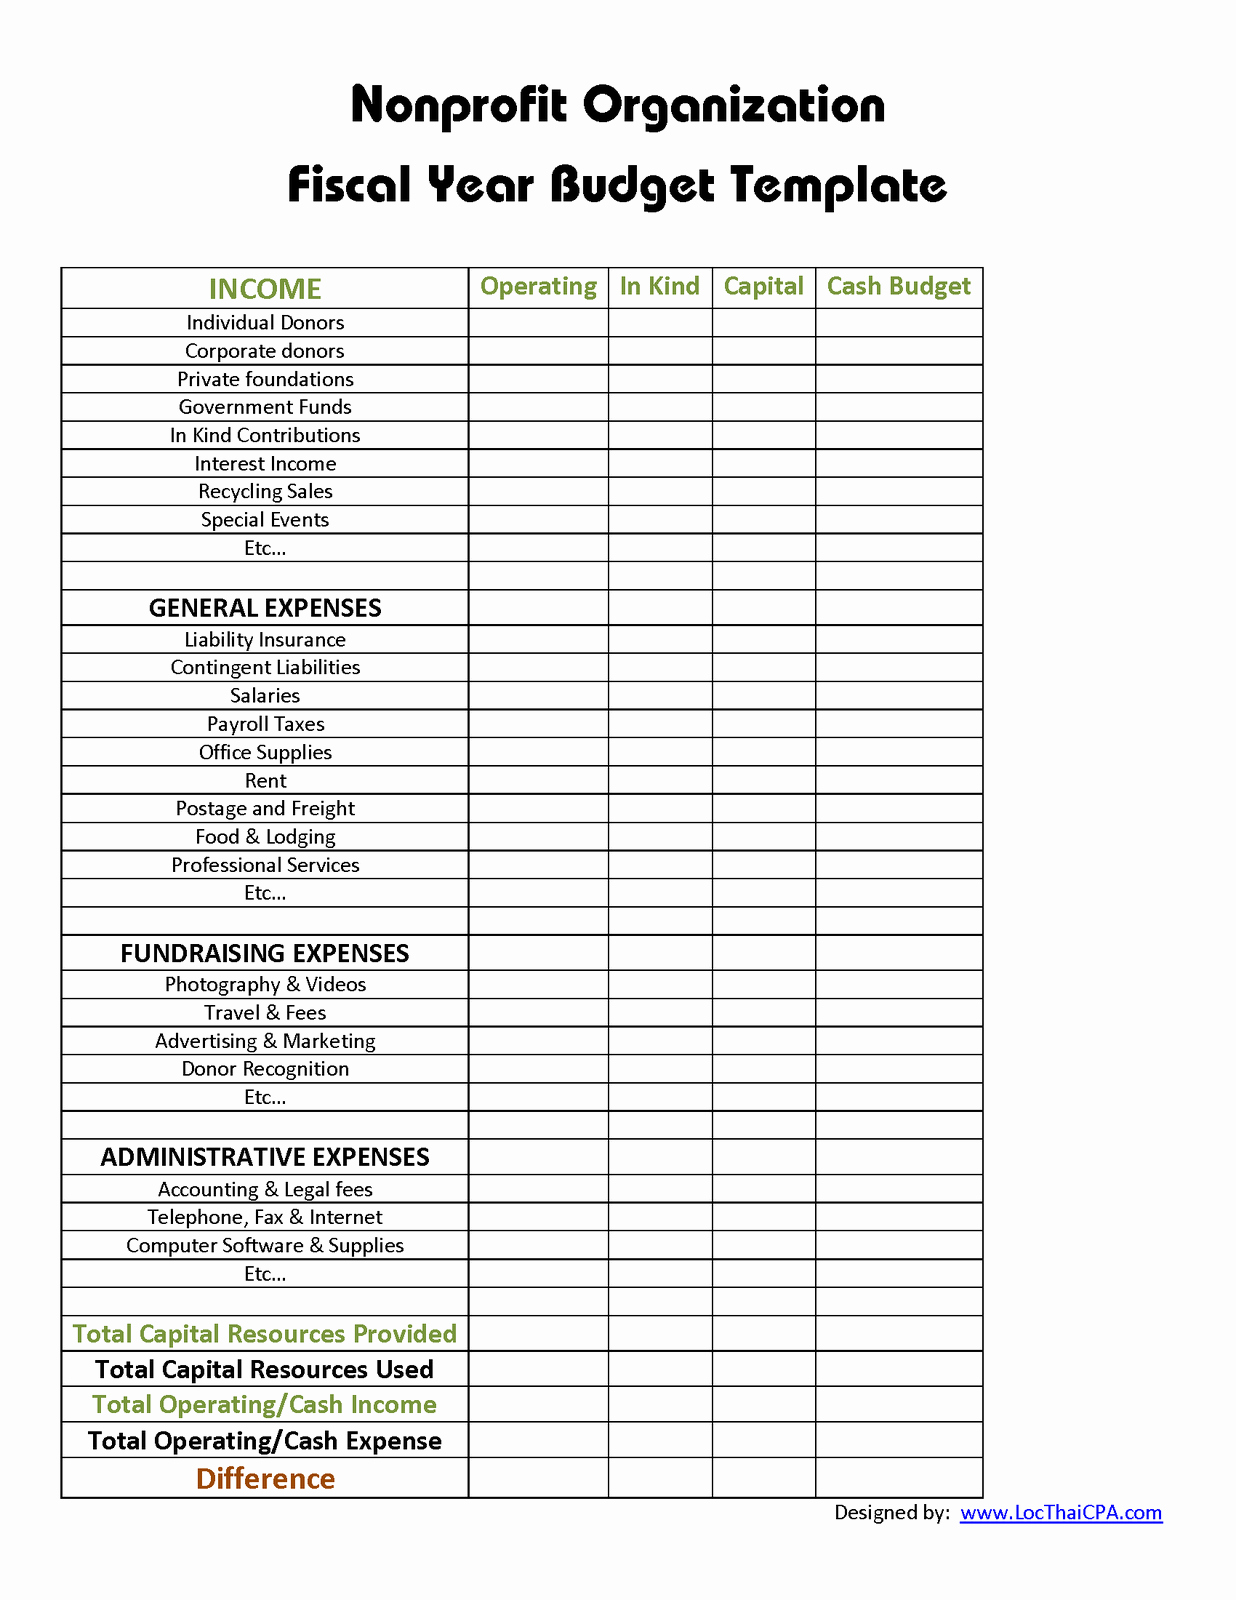 Nonprofit Operating Budget Template Beautiful Operating Bud Template Non Profit